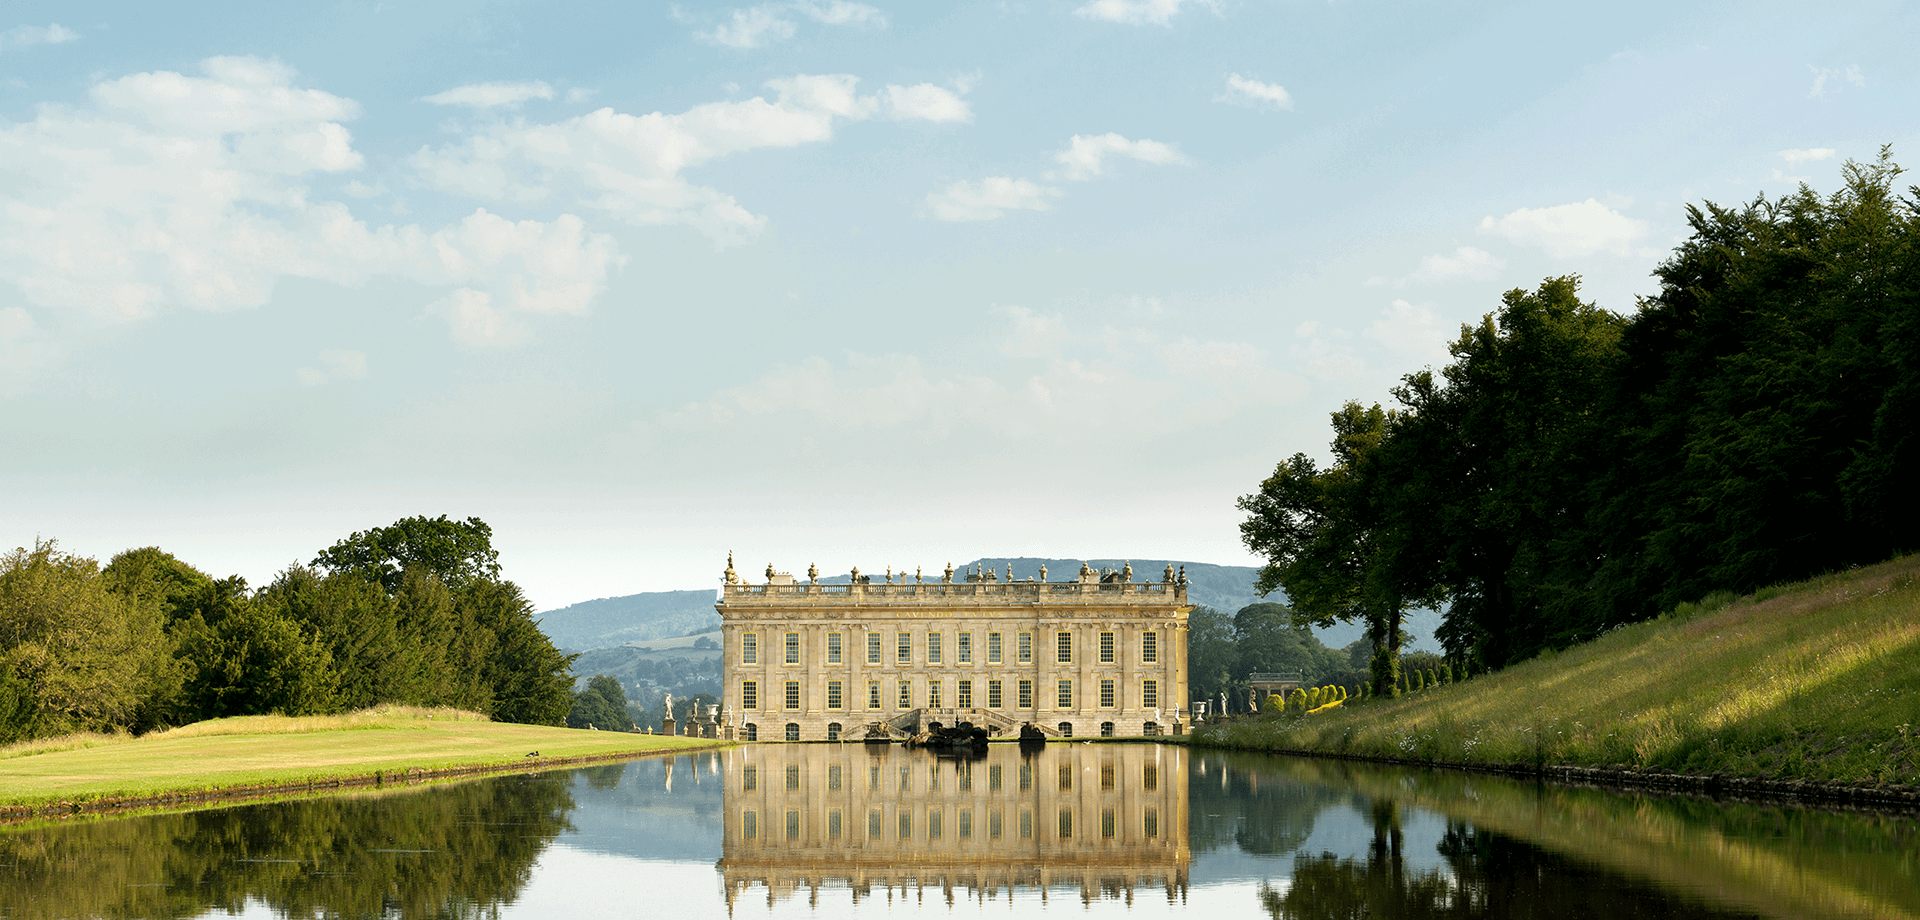 Vote for Chatsworth to be one of England's Seven Wonders!